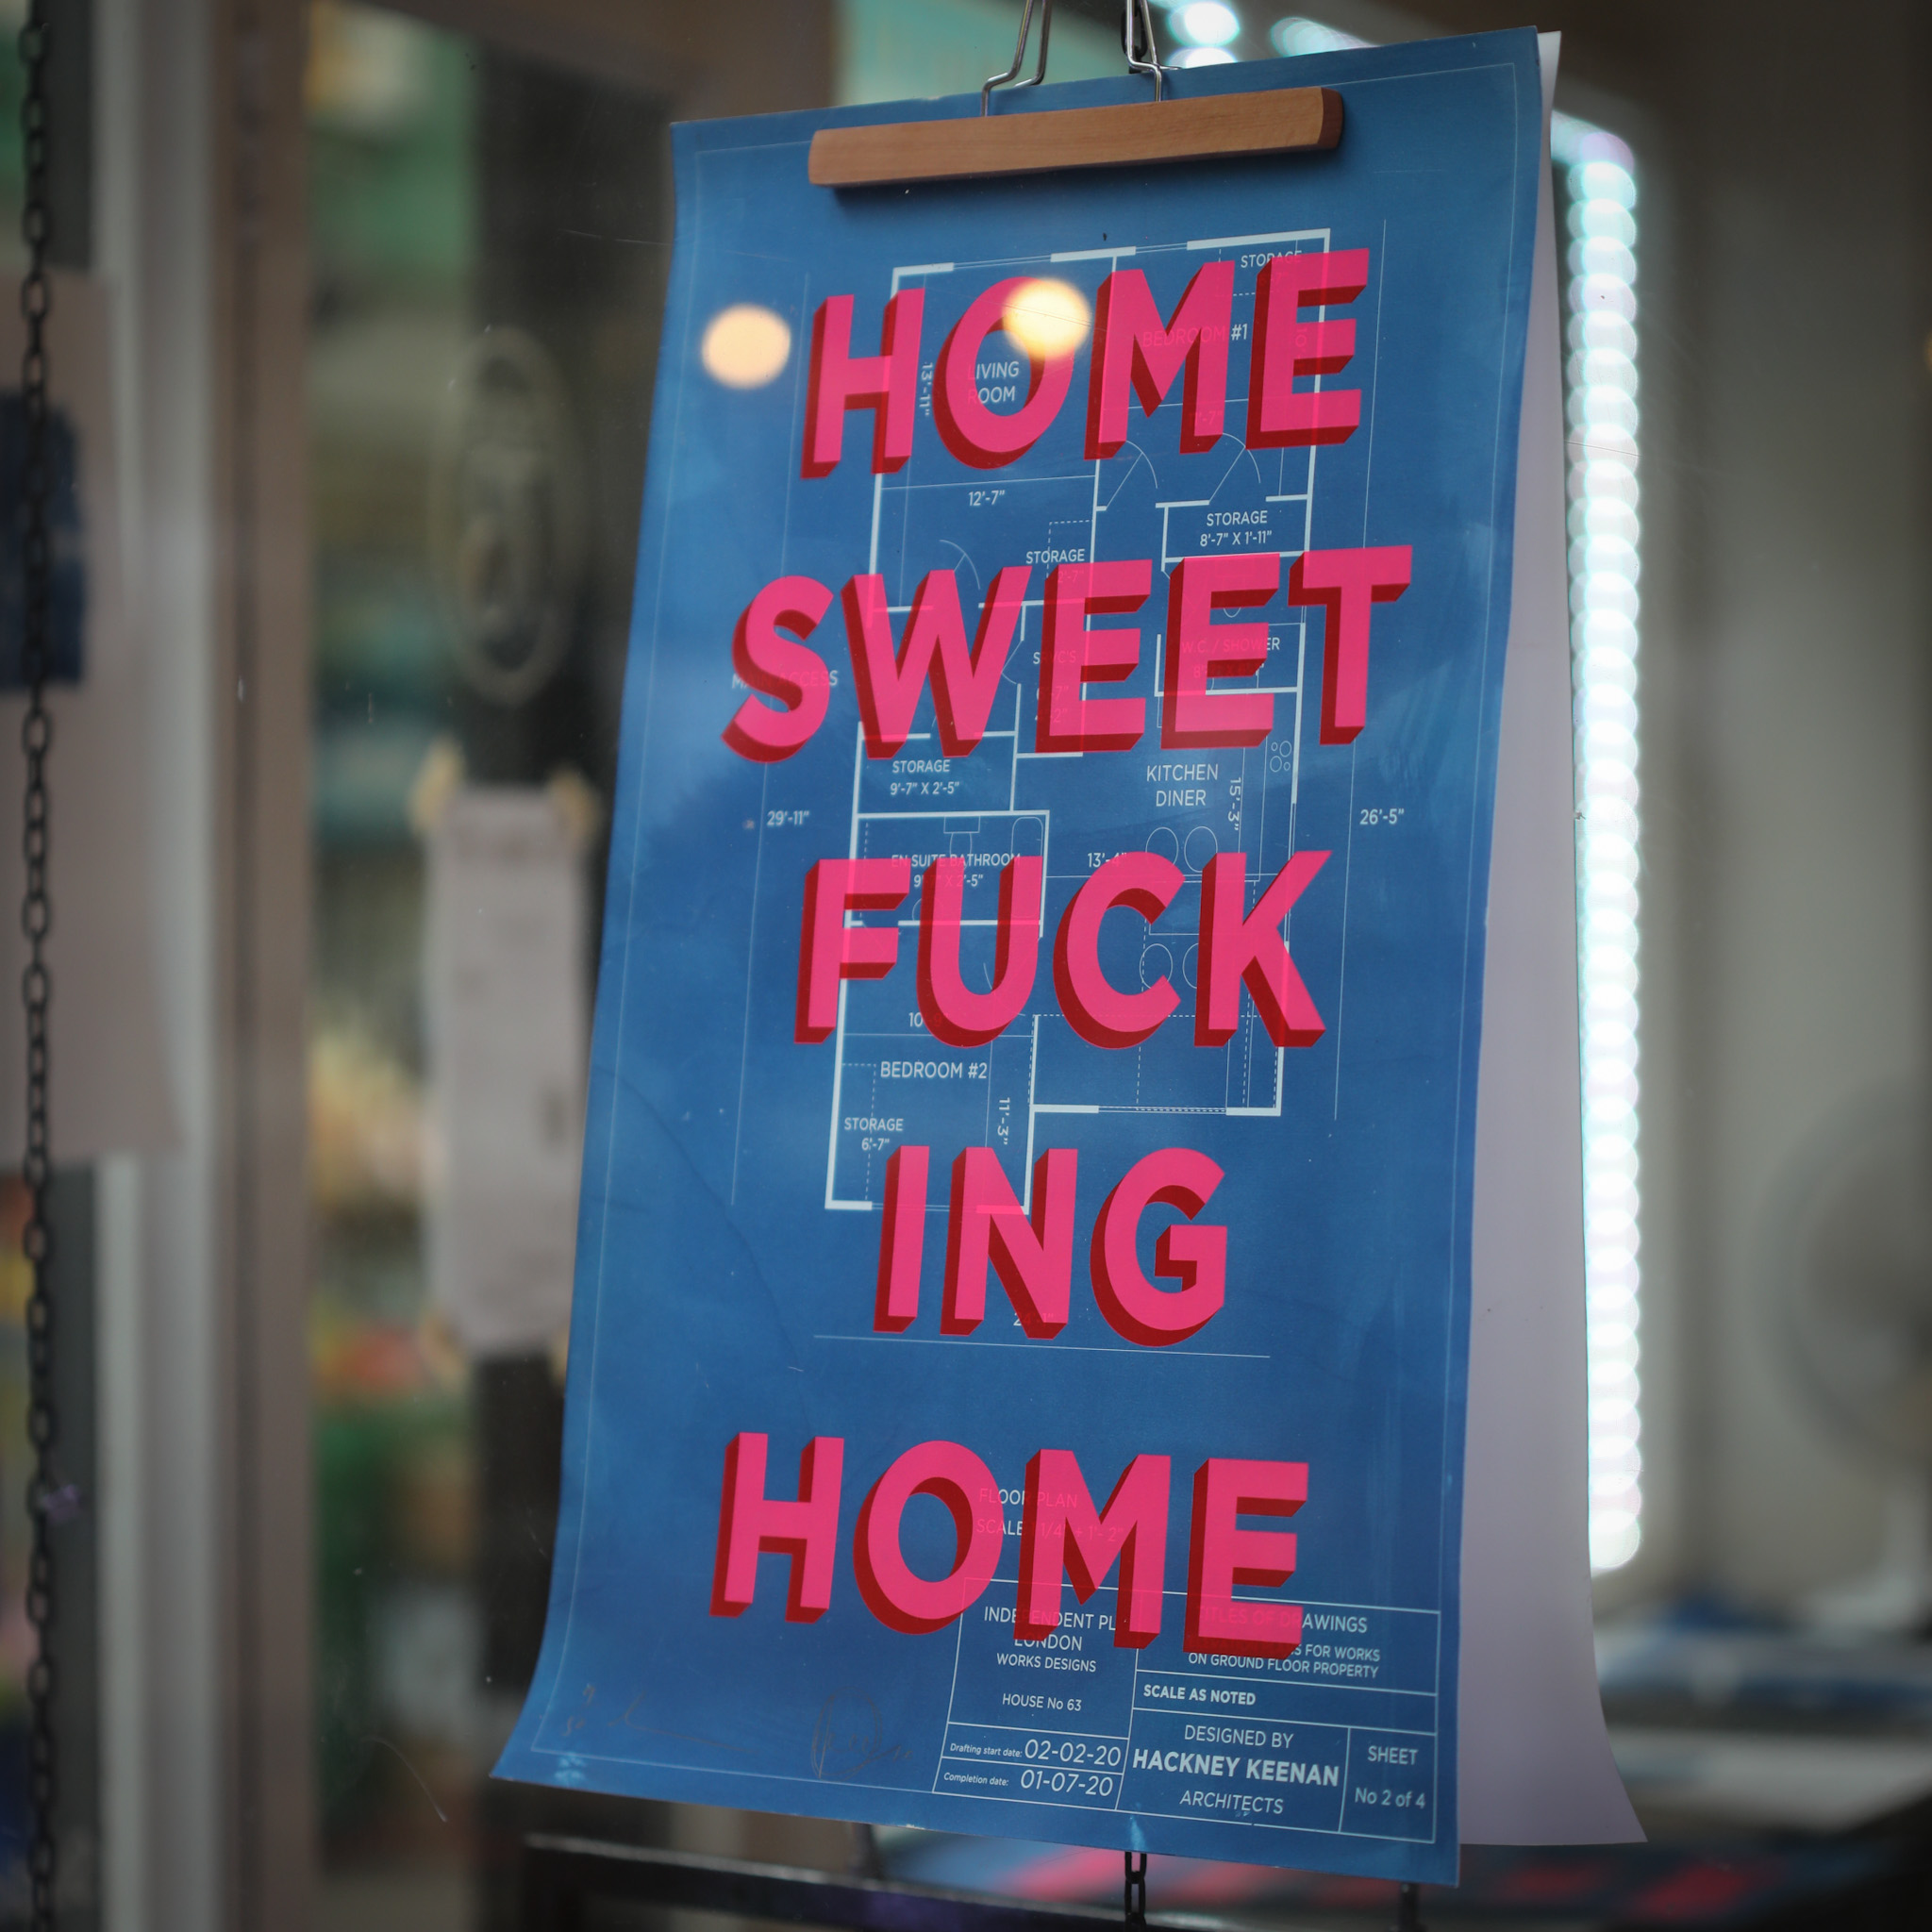 DEEFB3DC B91E 4F84 80C4 90317BF36BE0 - Home Sweet Fucking Home by Craig Keenan and Dave Buonaguidi